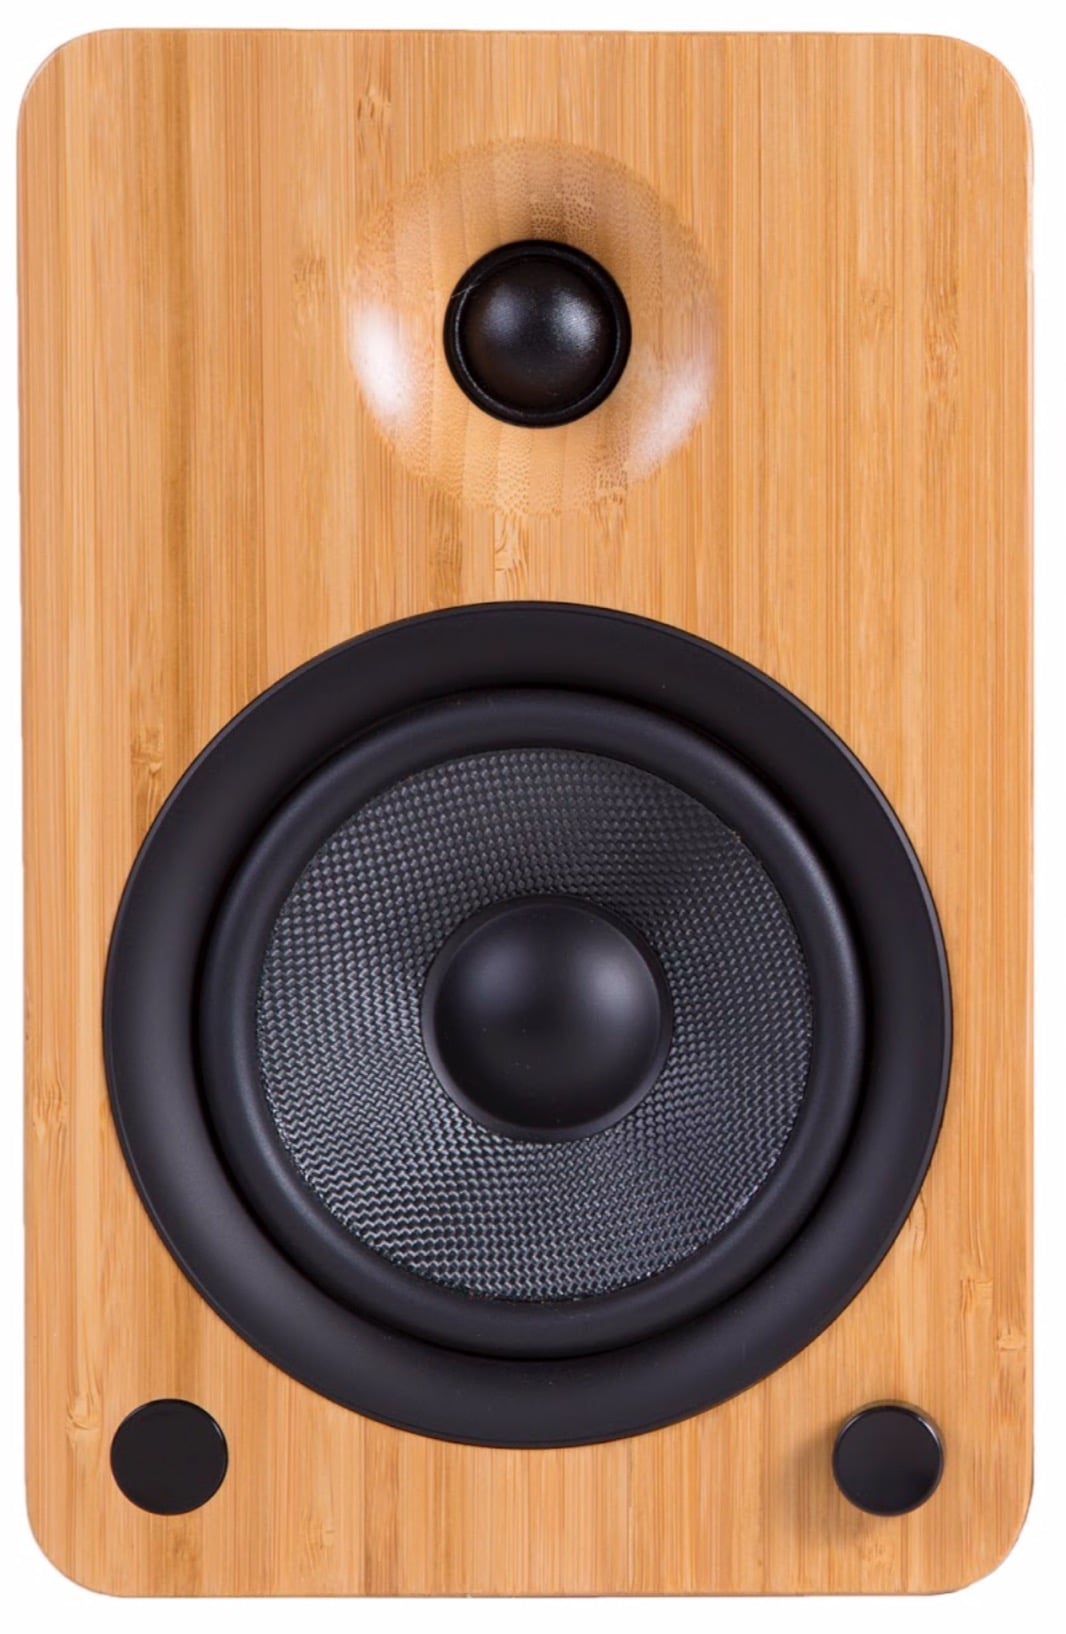 YU4 Powered Speakers From Kanto